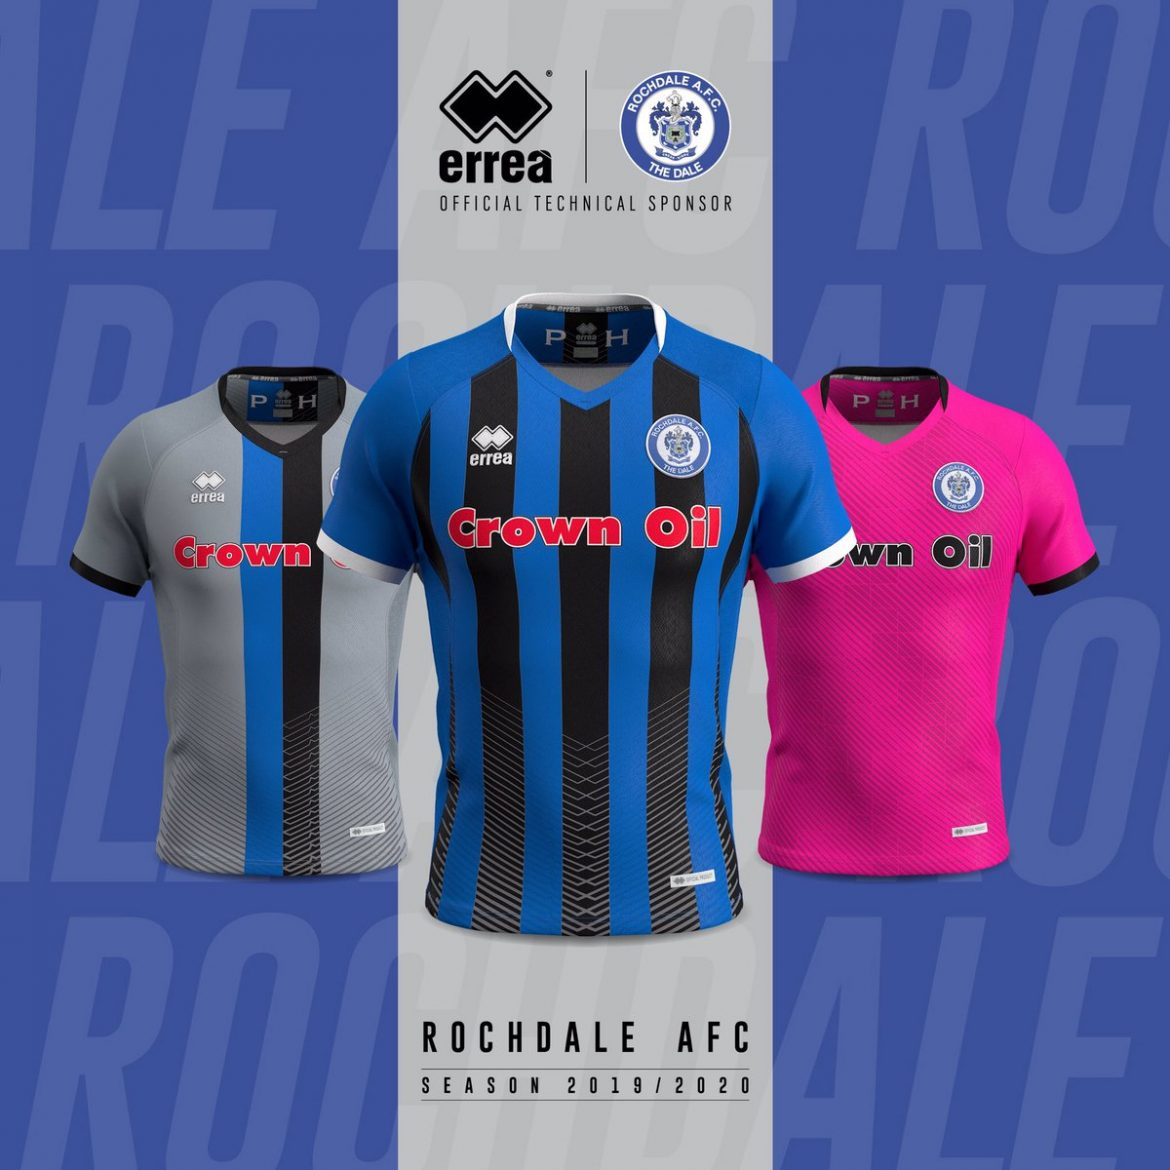 Camisas do Rochdale AFC 2019